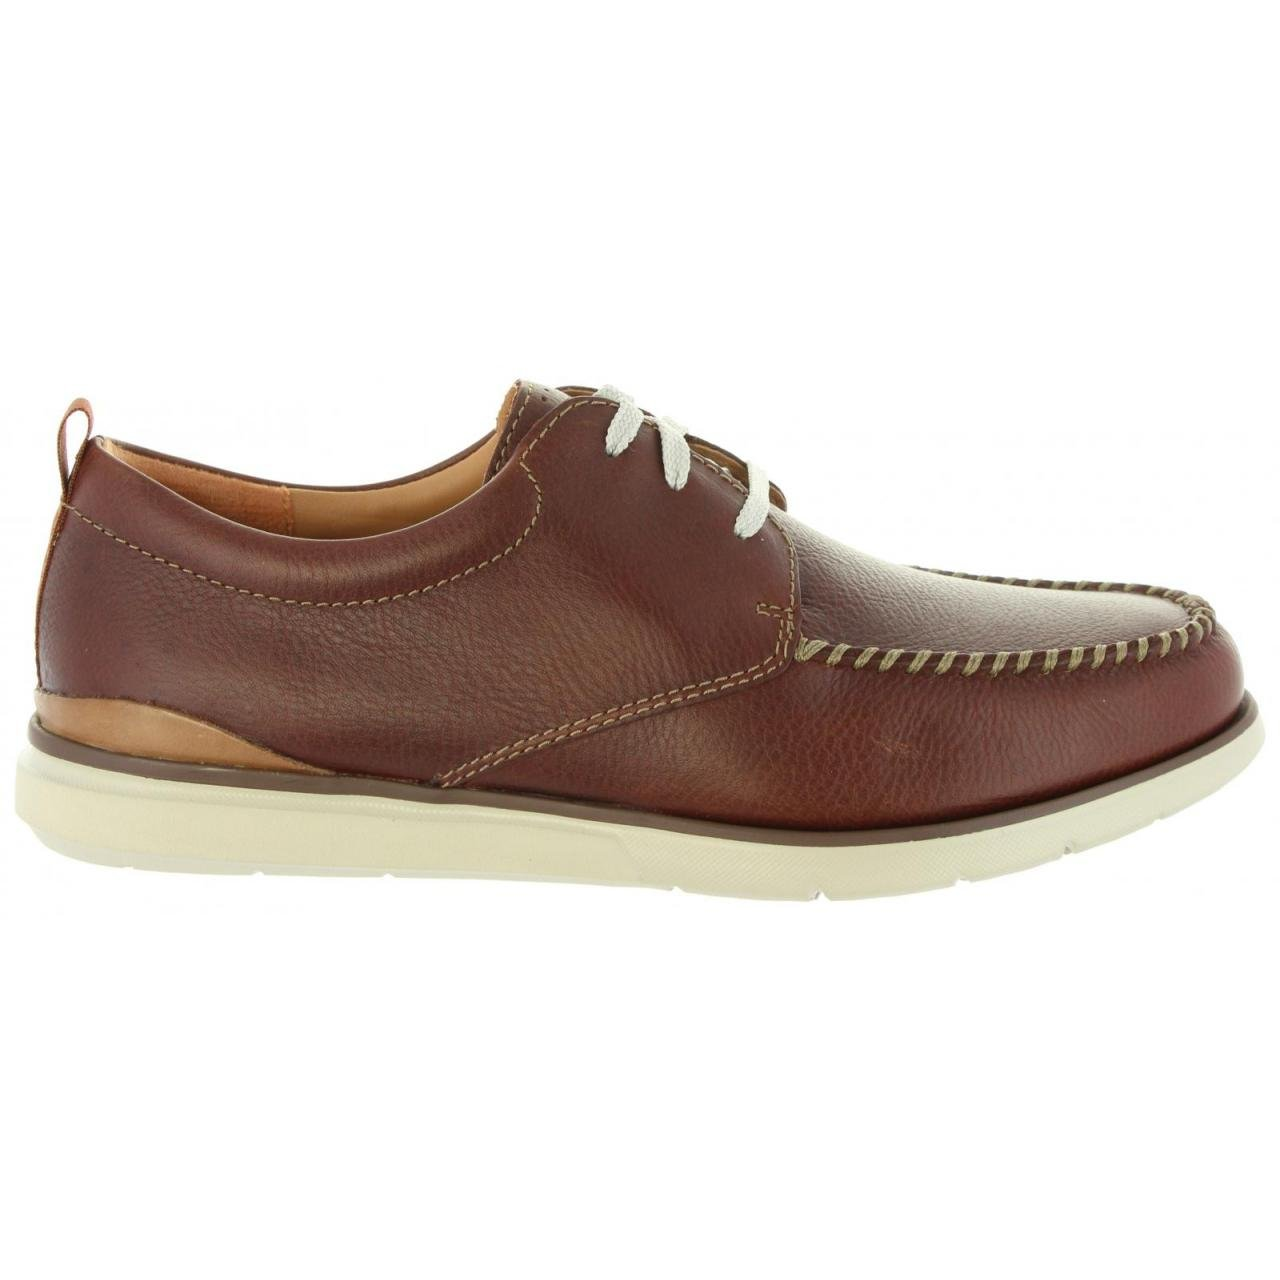 Clarks Edgewood Mix - Mahogany Leather 44.5 EU|Brown